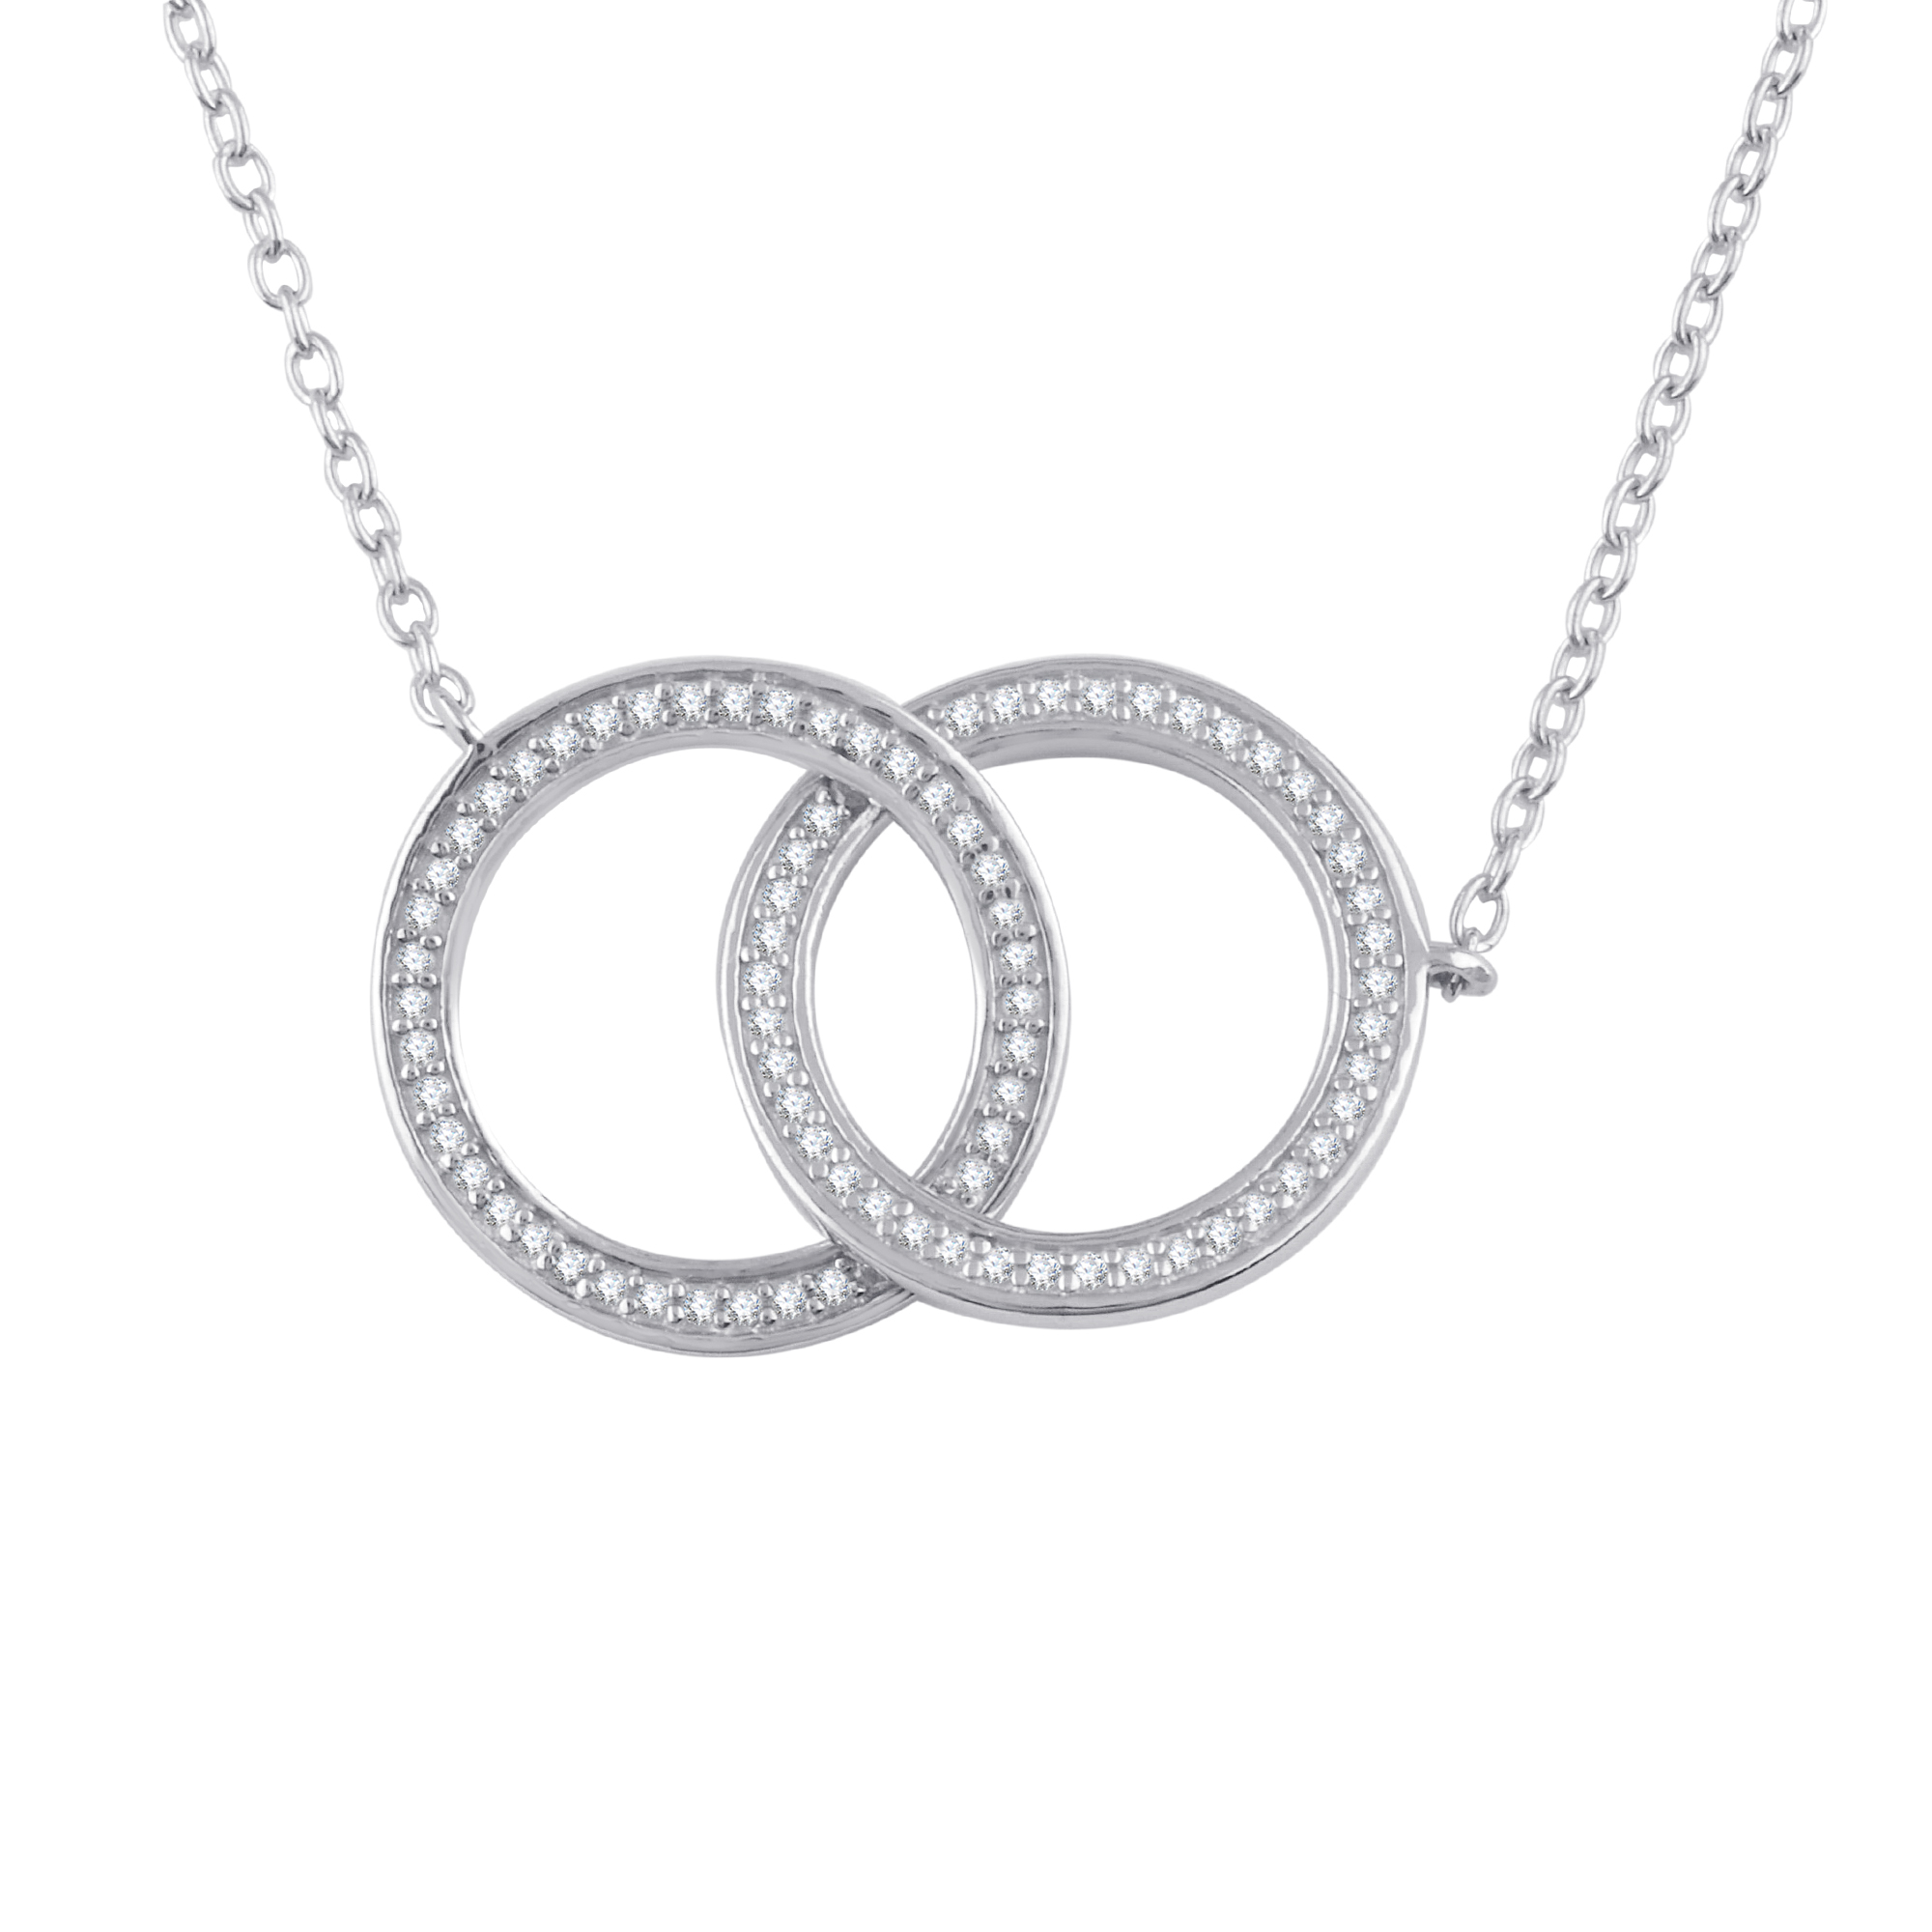 1 4 Carat Diamond Sterling Silver Circle Necklace by Premier Jewelry Designs, LLC